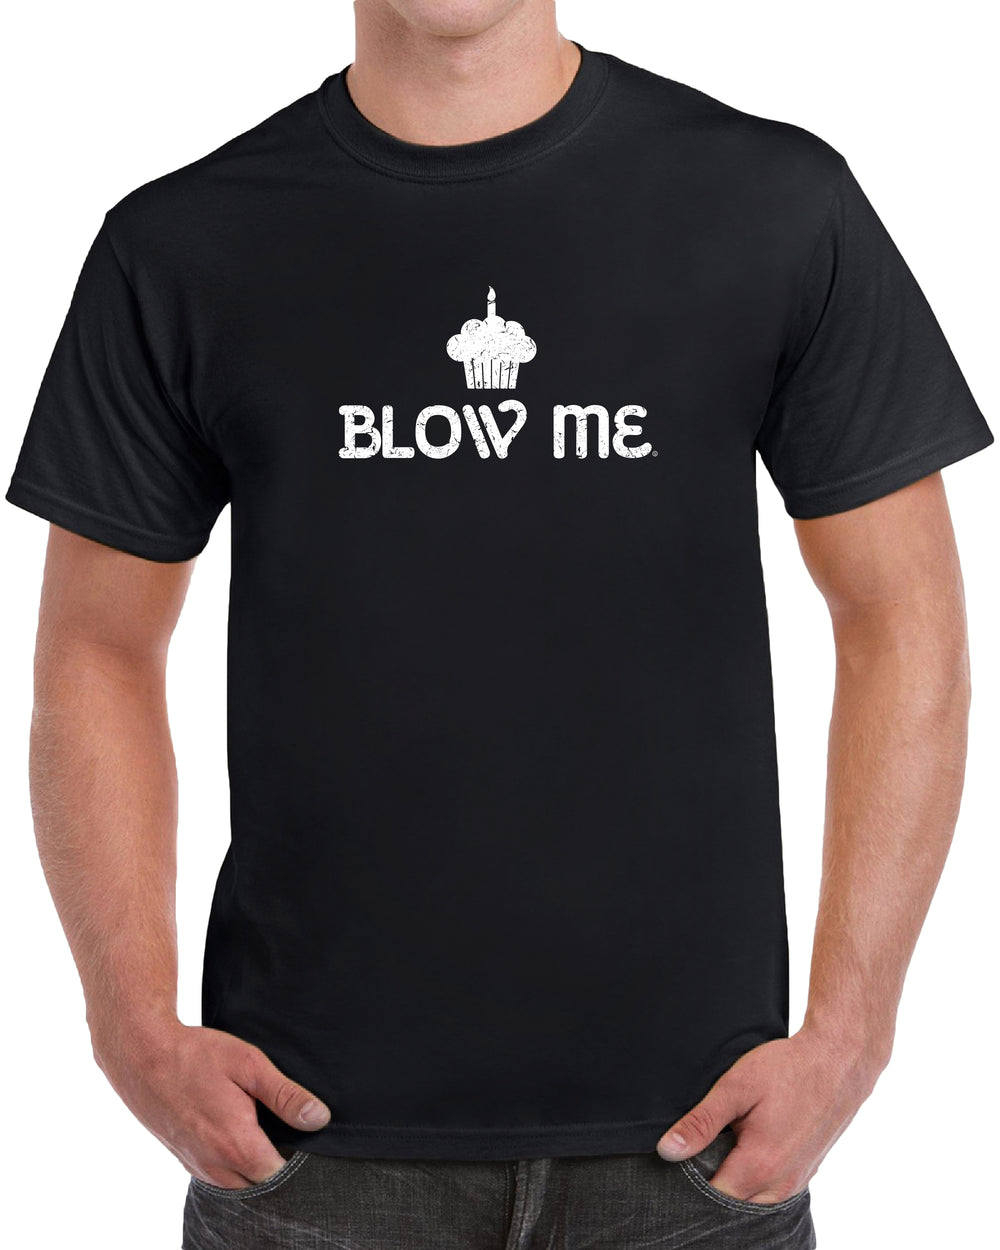 Blow Me - Distressed Print Cupcake